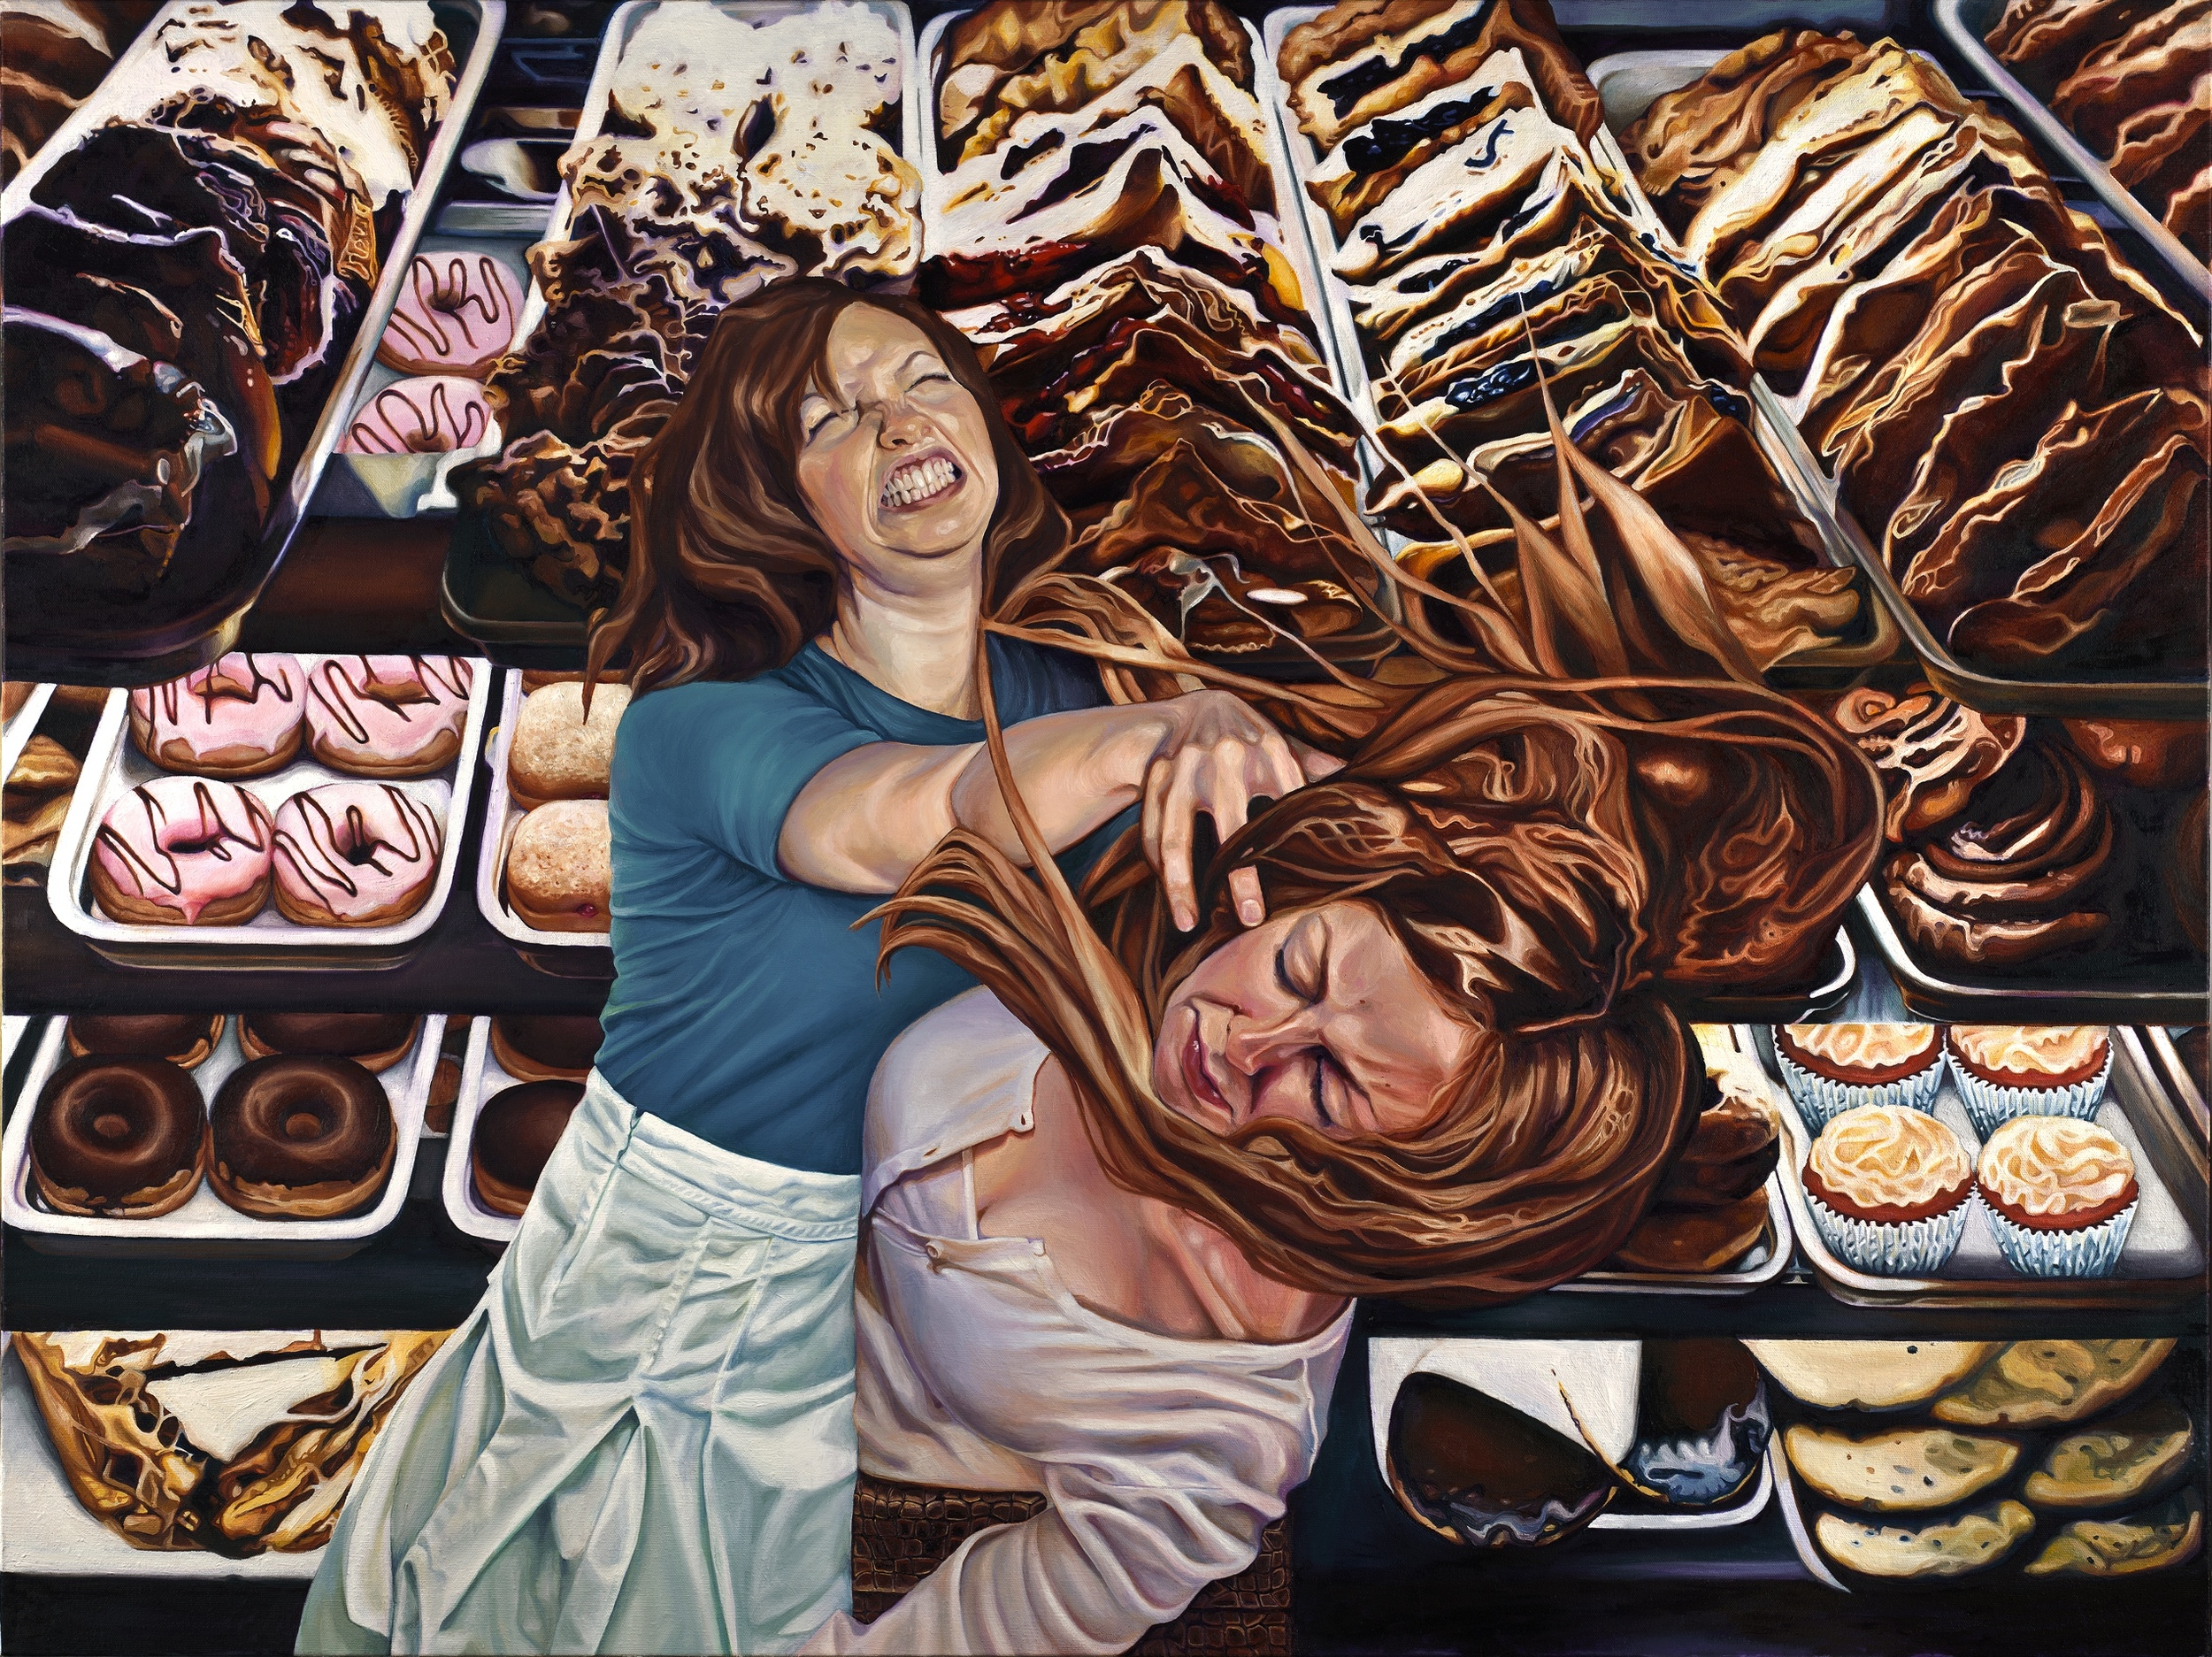 Bakery-Brawl-saved-for-web-increasedsaturation.jpg